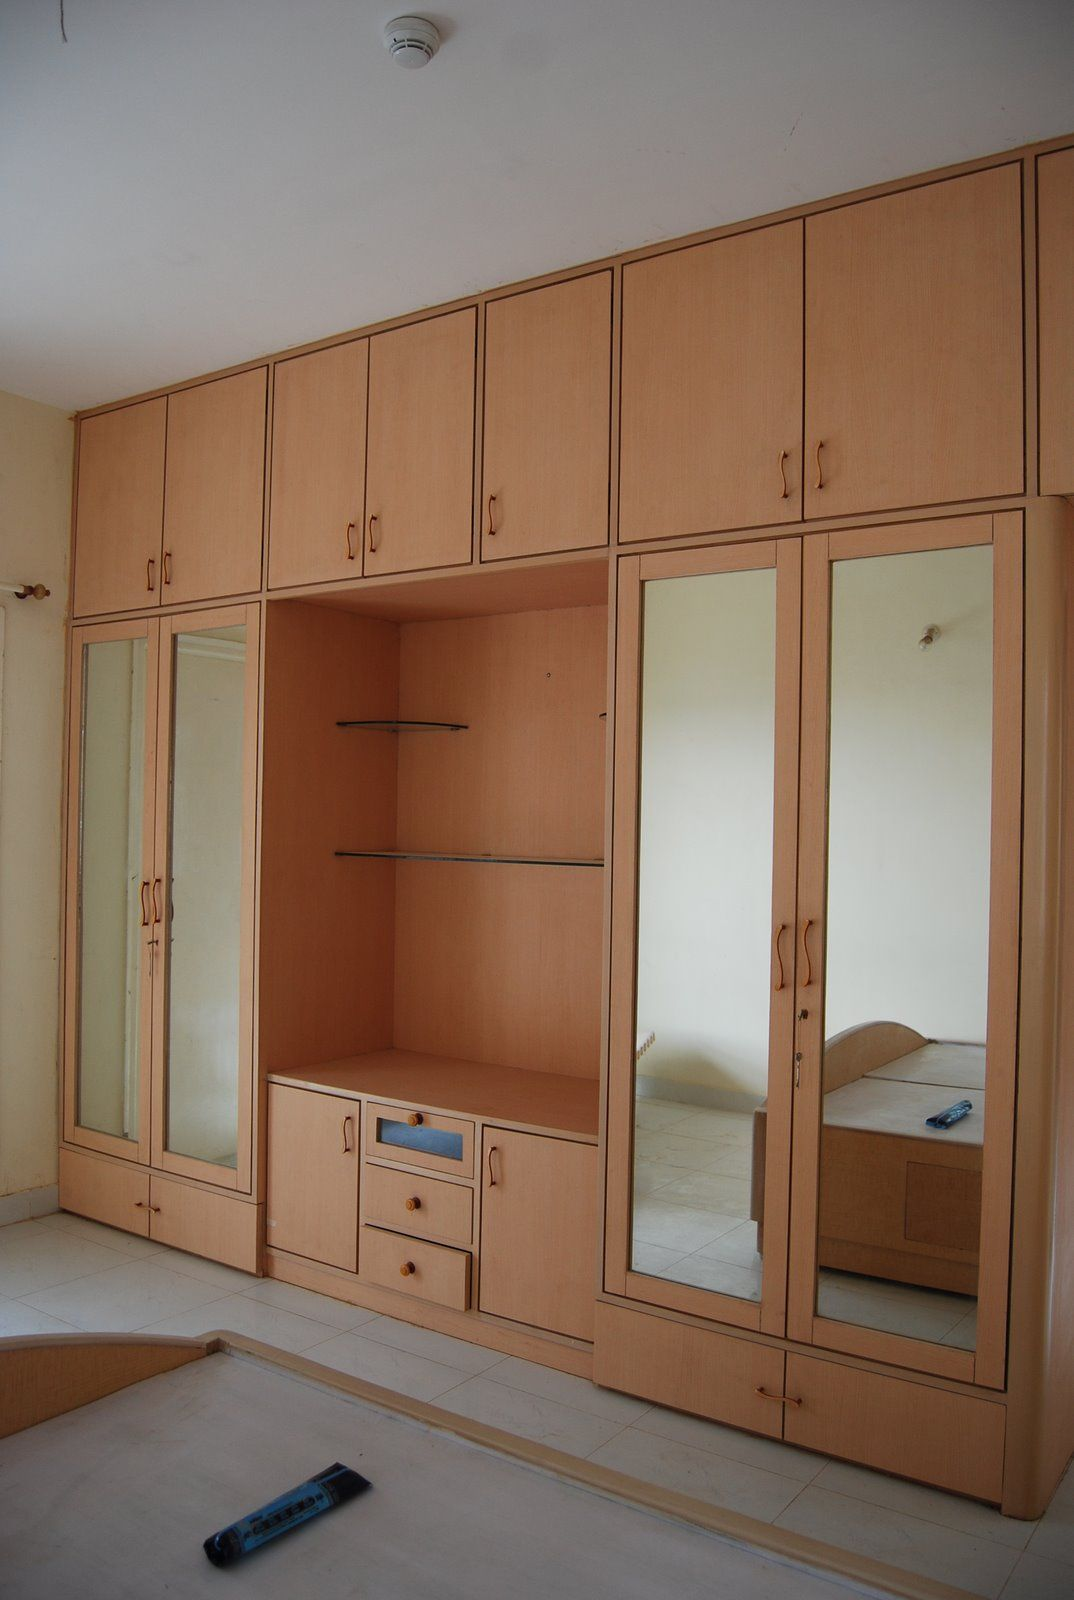 Bedroom Wardrobe Design Playwood Wadrobe With Cabinets Also Clothes Hangers  Trendy. Bedroom Wardrobe Design Playwood Wadrobe With Cabinets Also